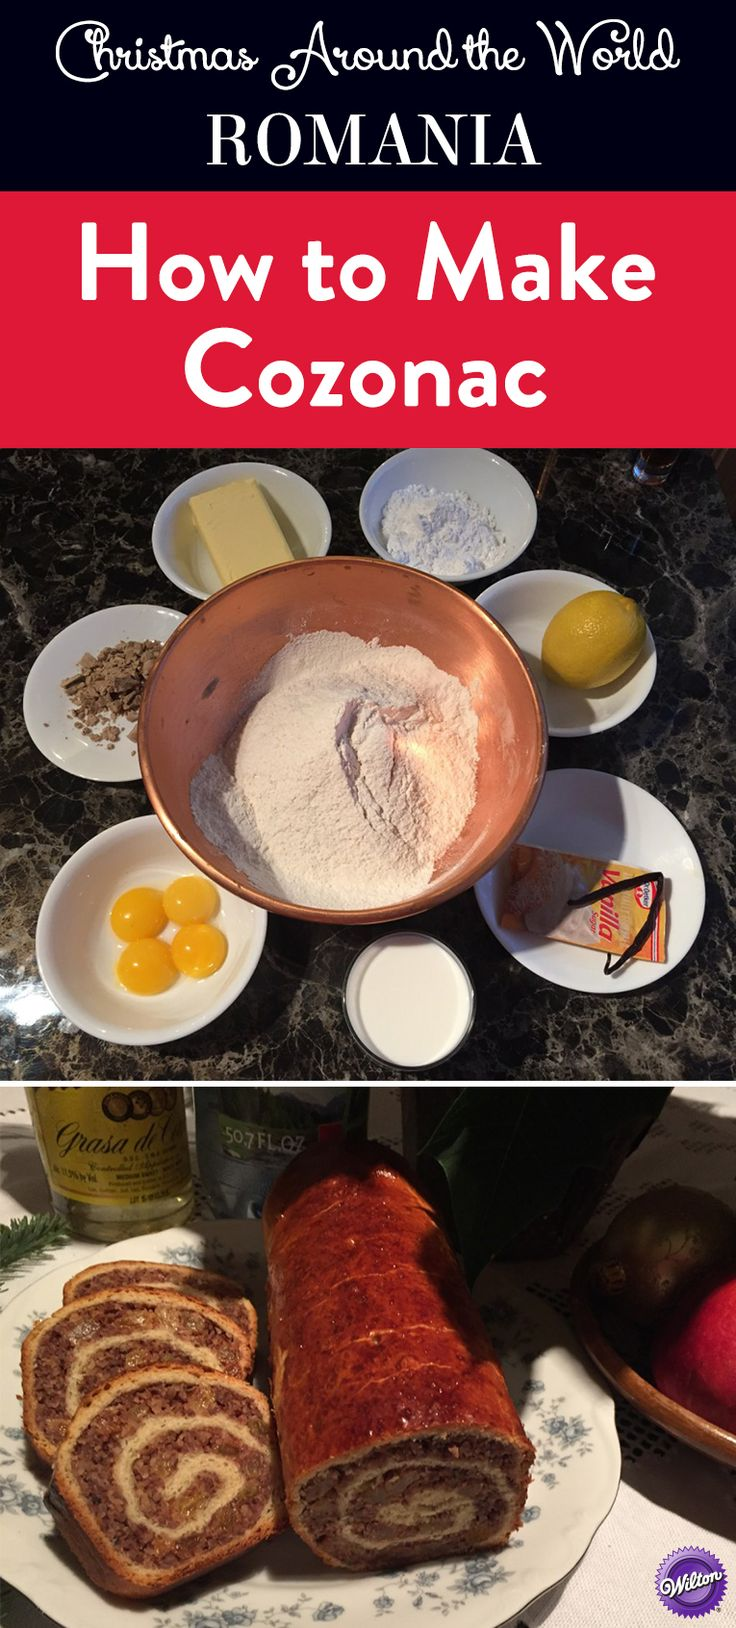 How to Make Cozonac - Learn how to make this sweet traditional Romanian Christmas food. Cozonac is a sweet walnut bread enriched with butter, eggs and milk and flavored with lemon zest, orange zest, raisins or rum. The dough is rolled flat with a rolling pin, a rich filling is spread, and then the dough is rolled back into a shape that somewhat resembles a pinwheel. Once baked, the filling forms a swirl.